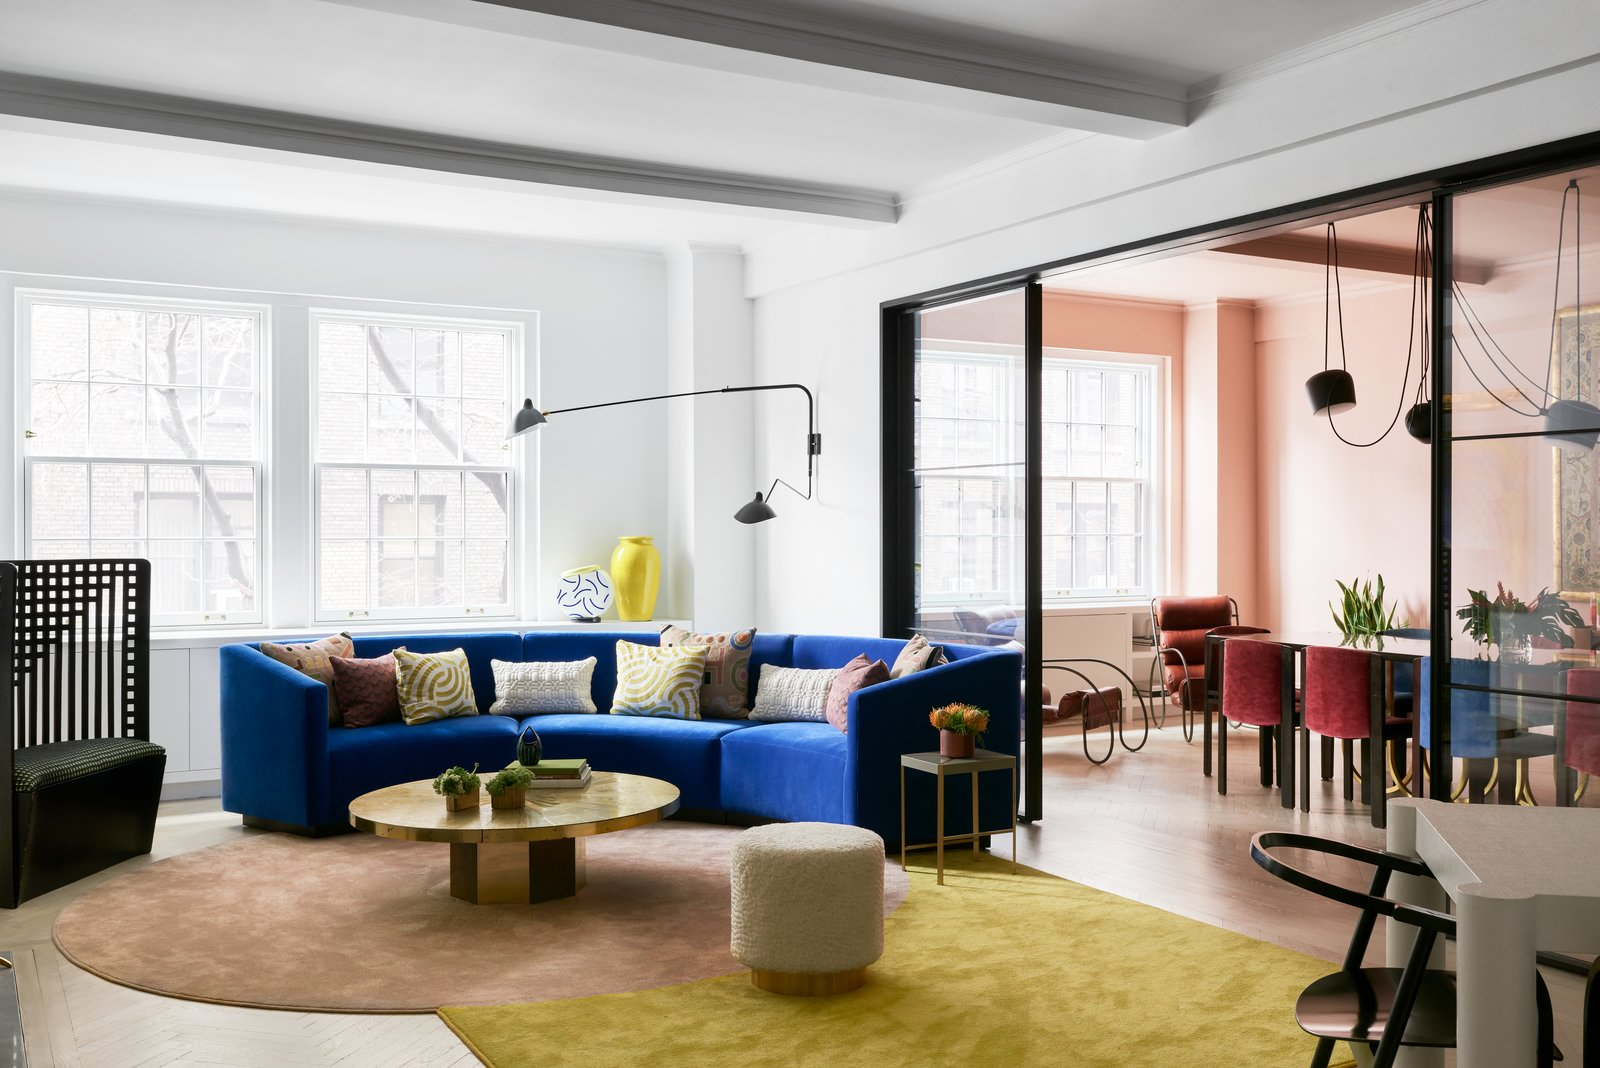 new-york-architects-on-home-design-after-coronavirus-covid-19-pandemic – Dwell